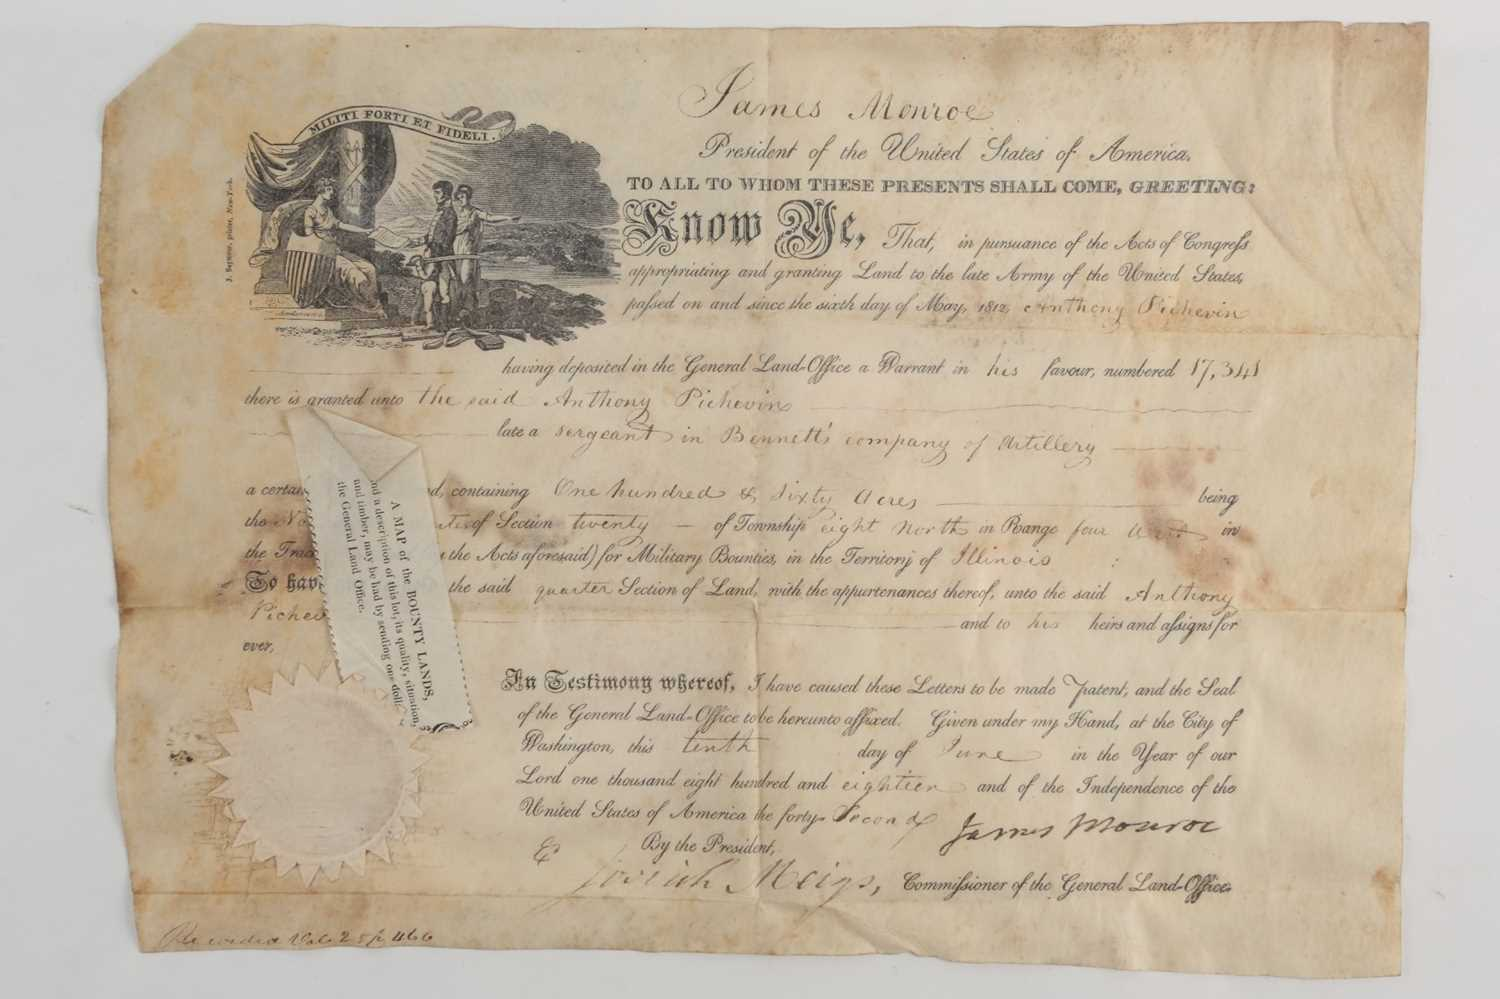 Historical American Interest. An early 19th-century velum land grant indenture signed by James